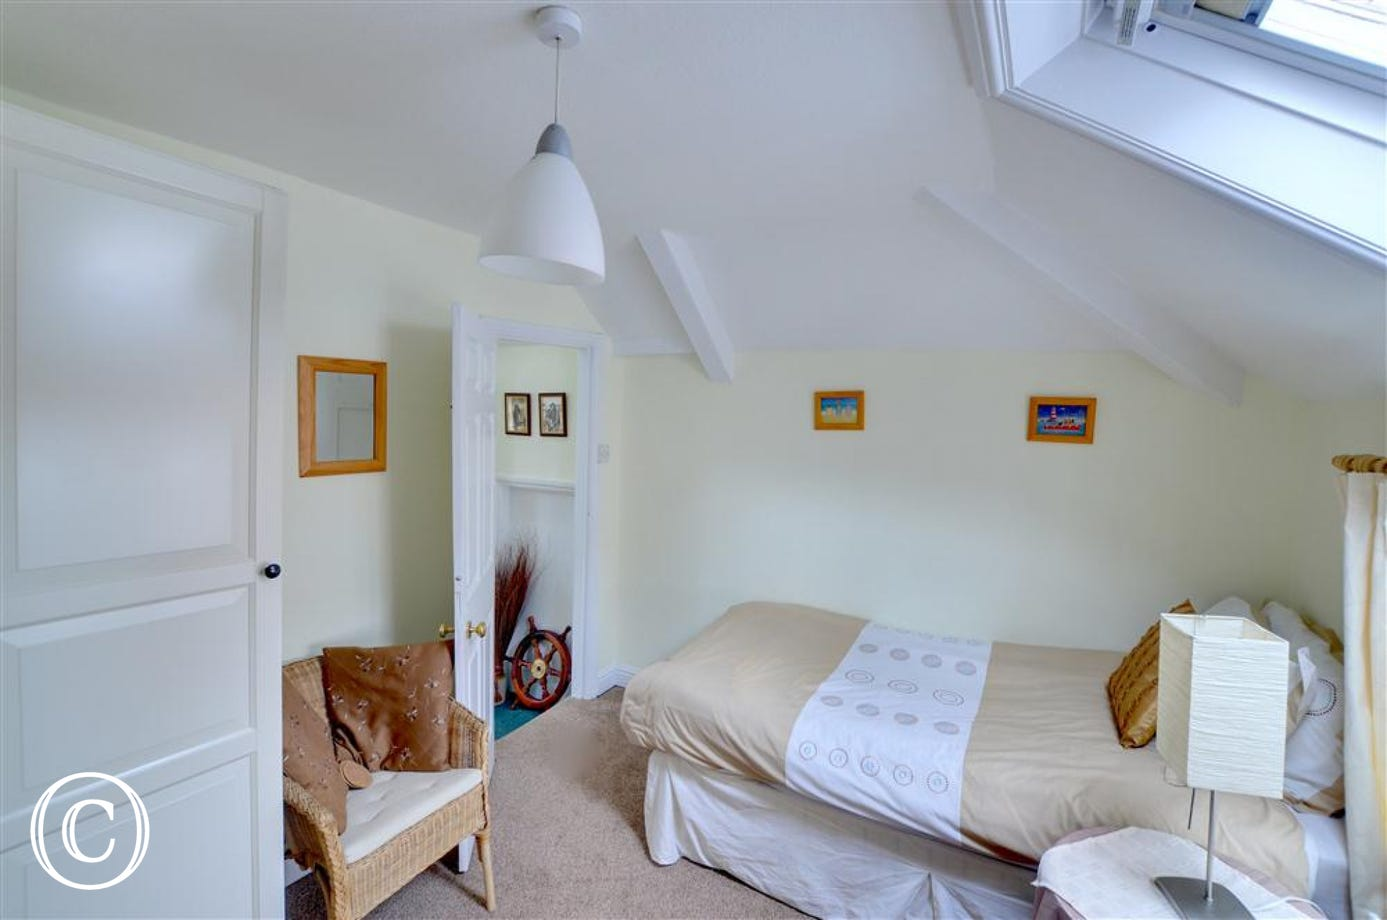 There is a Velux window in the twin room which gives it a bright and airy feel.